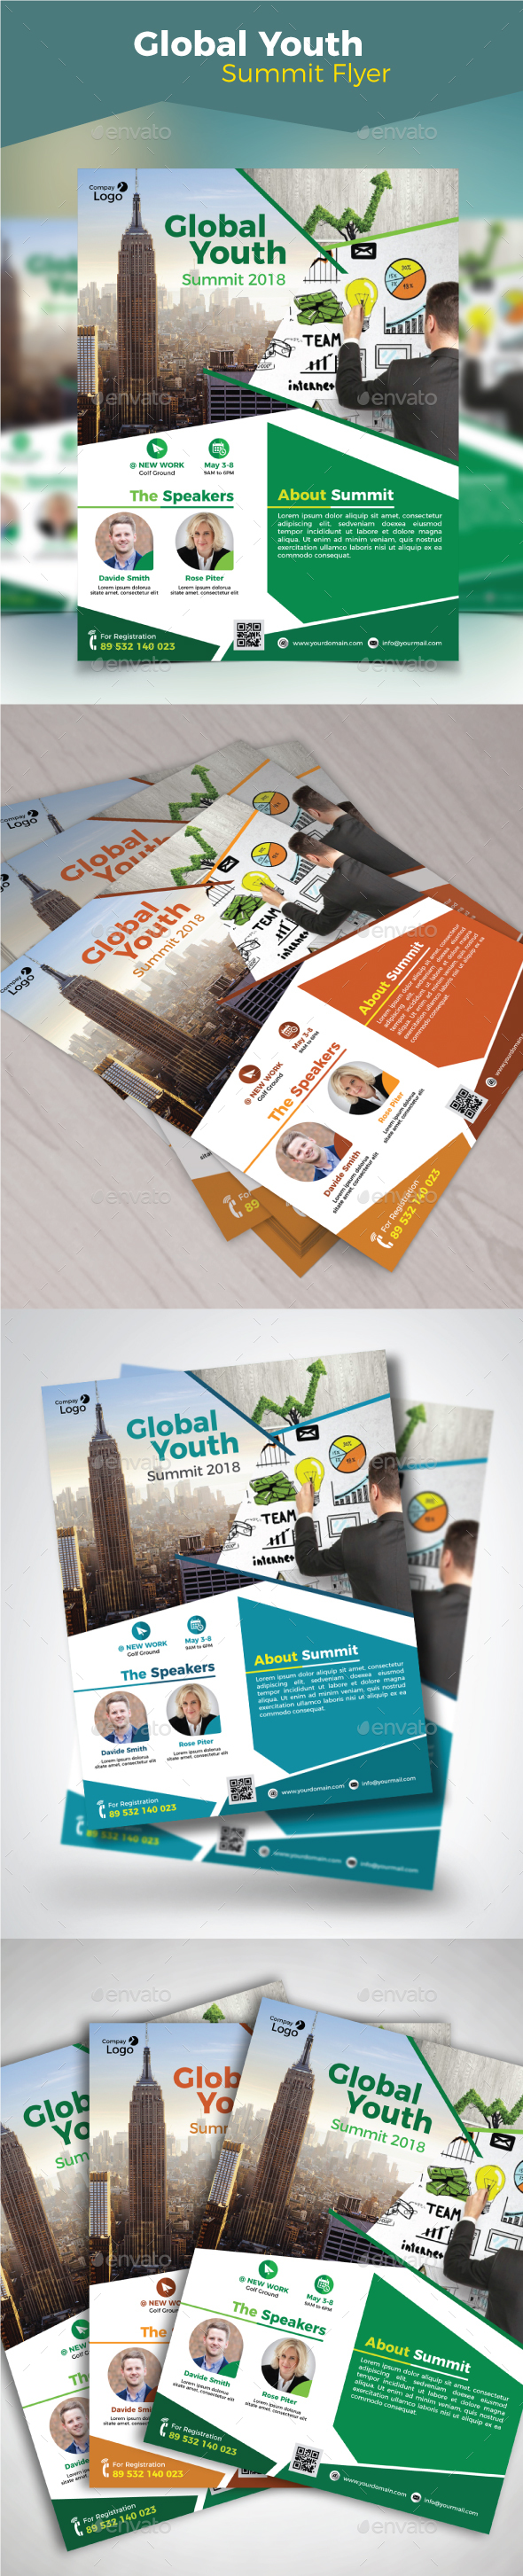 Global Youth Summit Flyer - Corporate Flyers